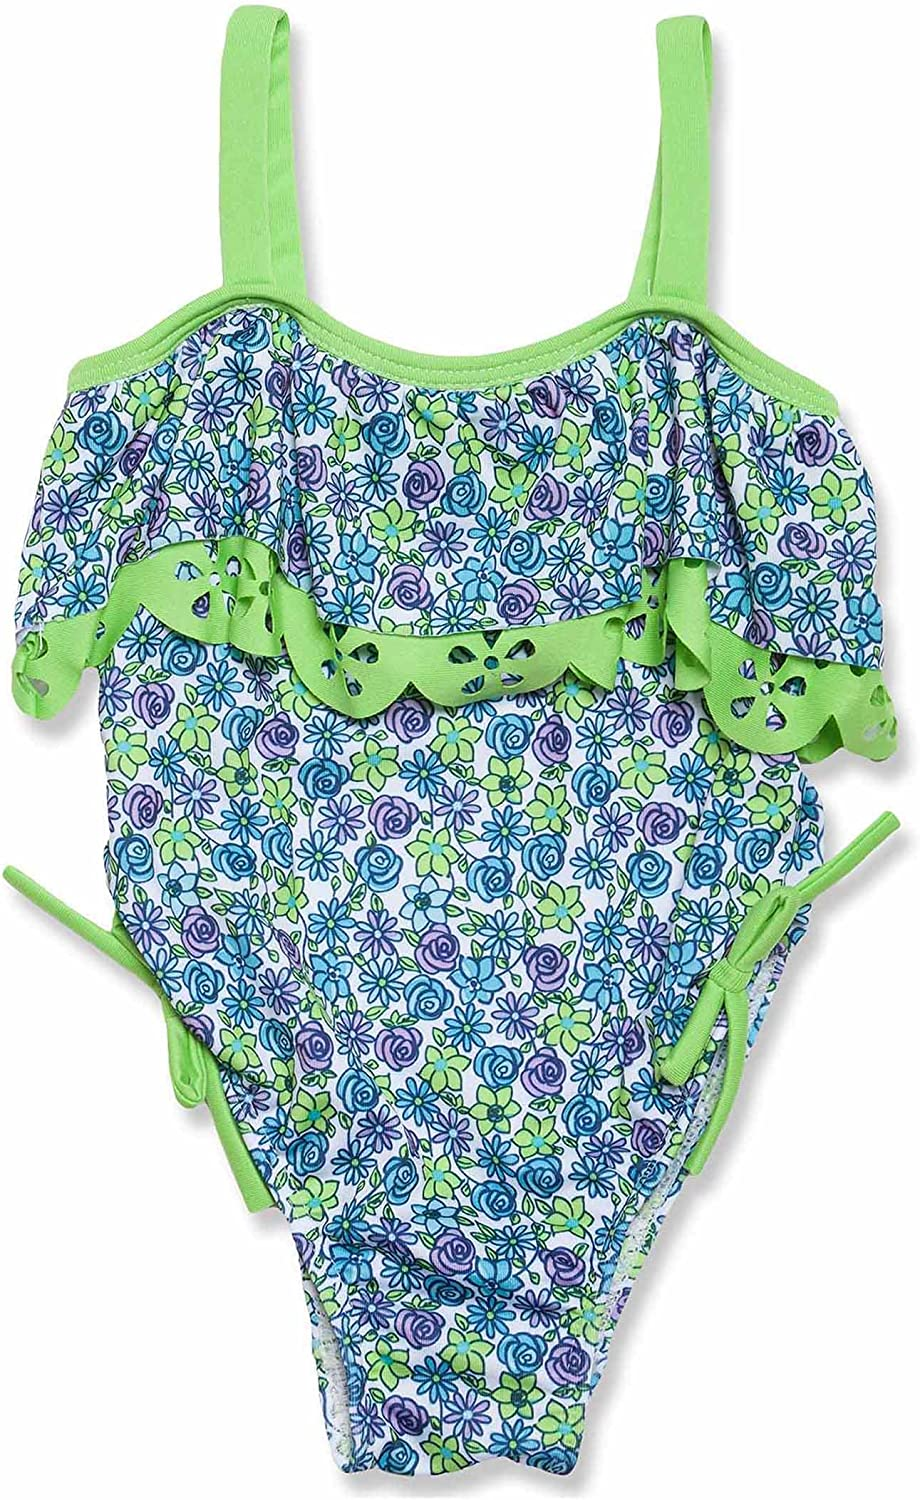 Penelope Mack Little Girls One-Piece Floral-Print Green and Blue Swimsuit Size 4